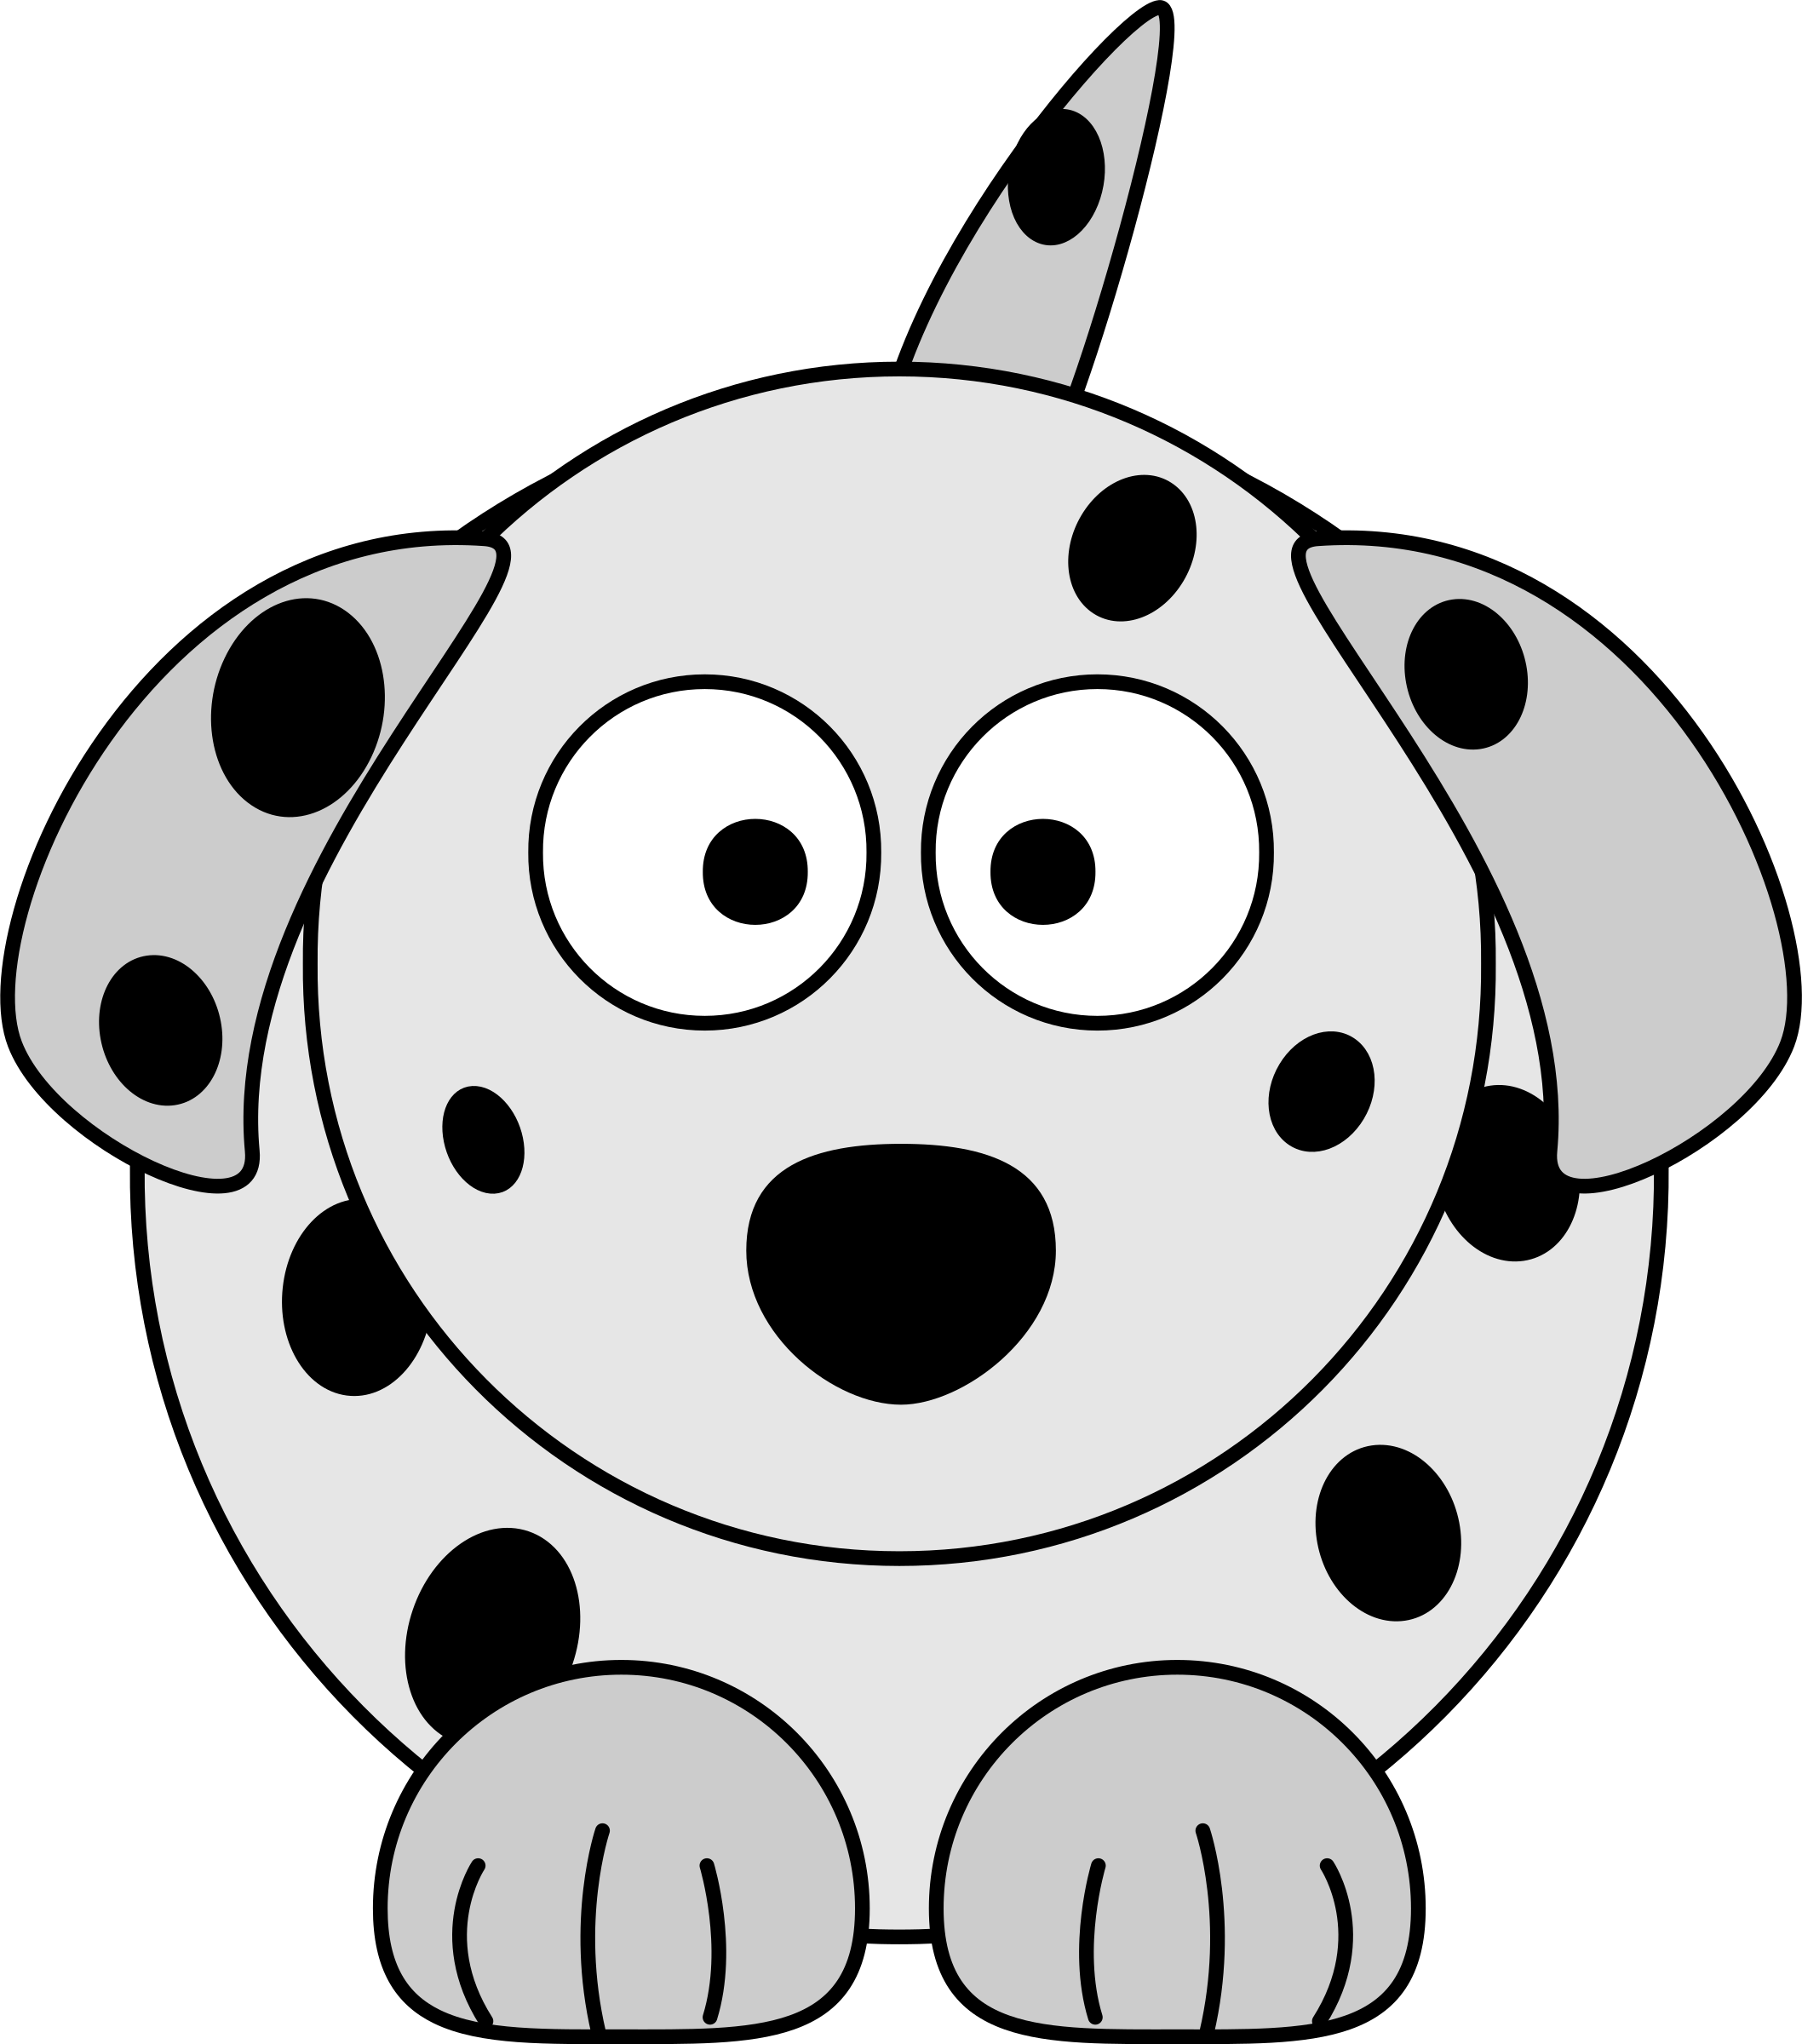 Dog growling clipart clipart royalty free stock Clipart - Dalmatian Cartoon Dog clipart royalty free stock